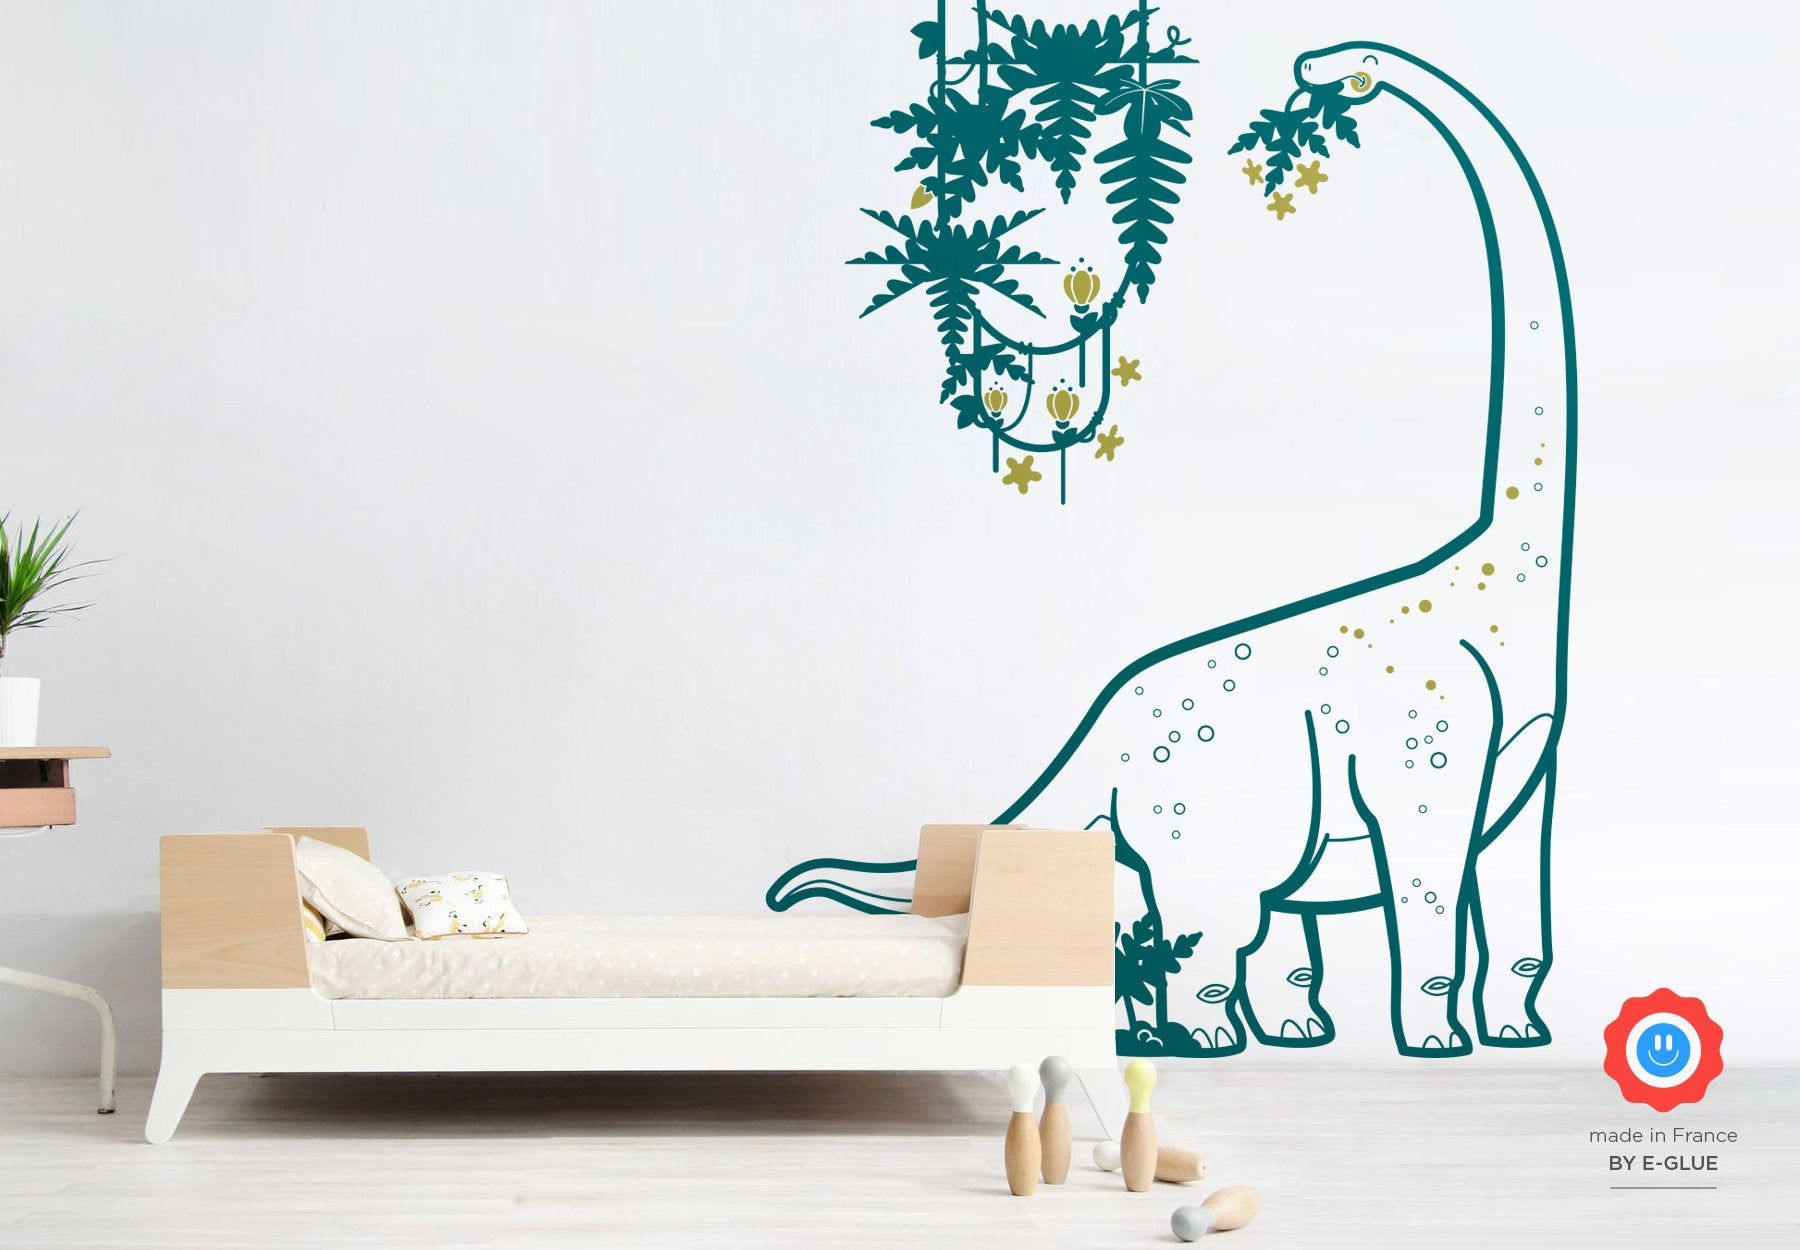 Dinosaur Wall Decals For Kids Room Diplodocus And Liana Large Boys Wall Stickers Kids Room Wall Decals Kids Room Wall Kids Wall Decals